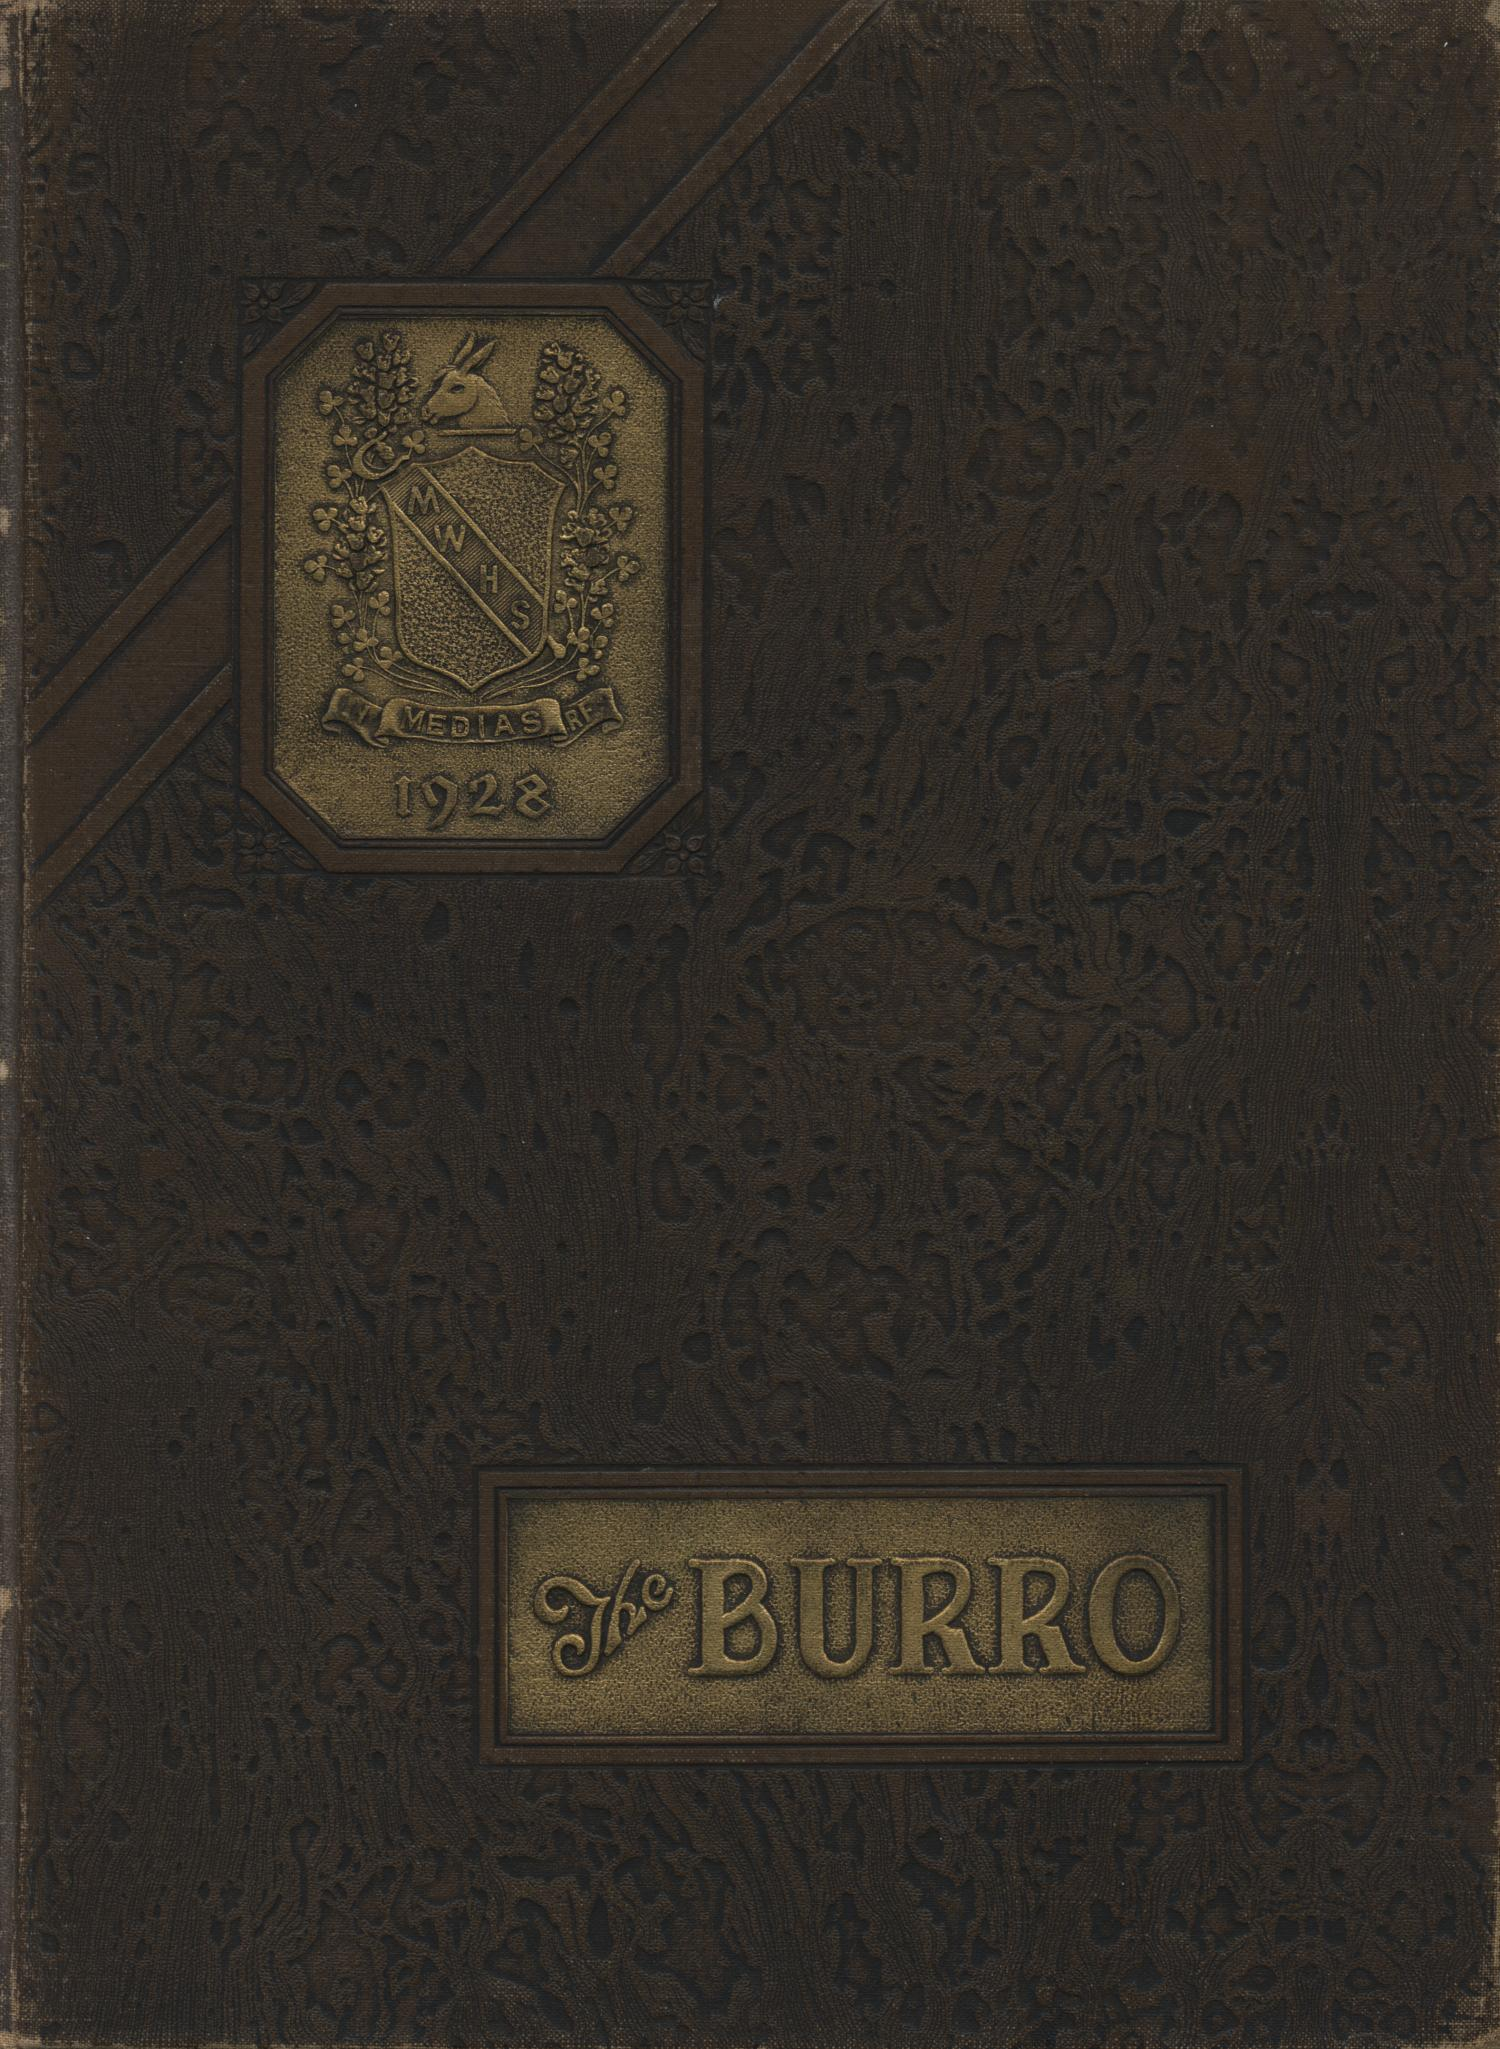 The Burro, Yearbook of Mineral Wells High School, 1928                                                                                                      Front Cover